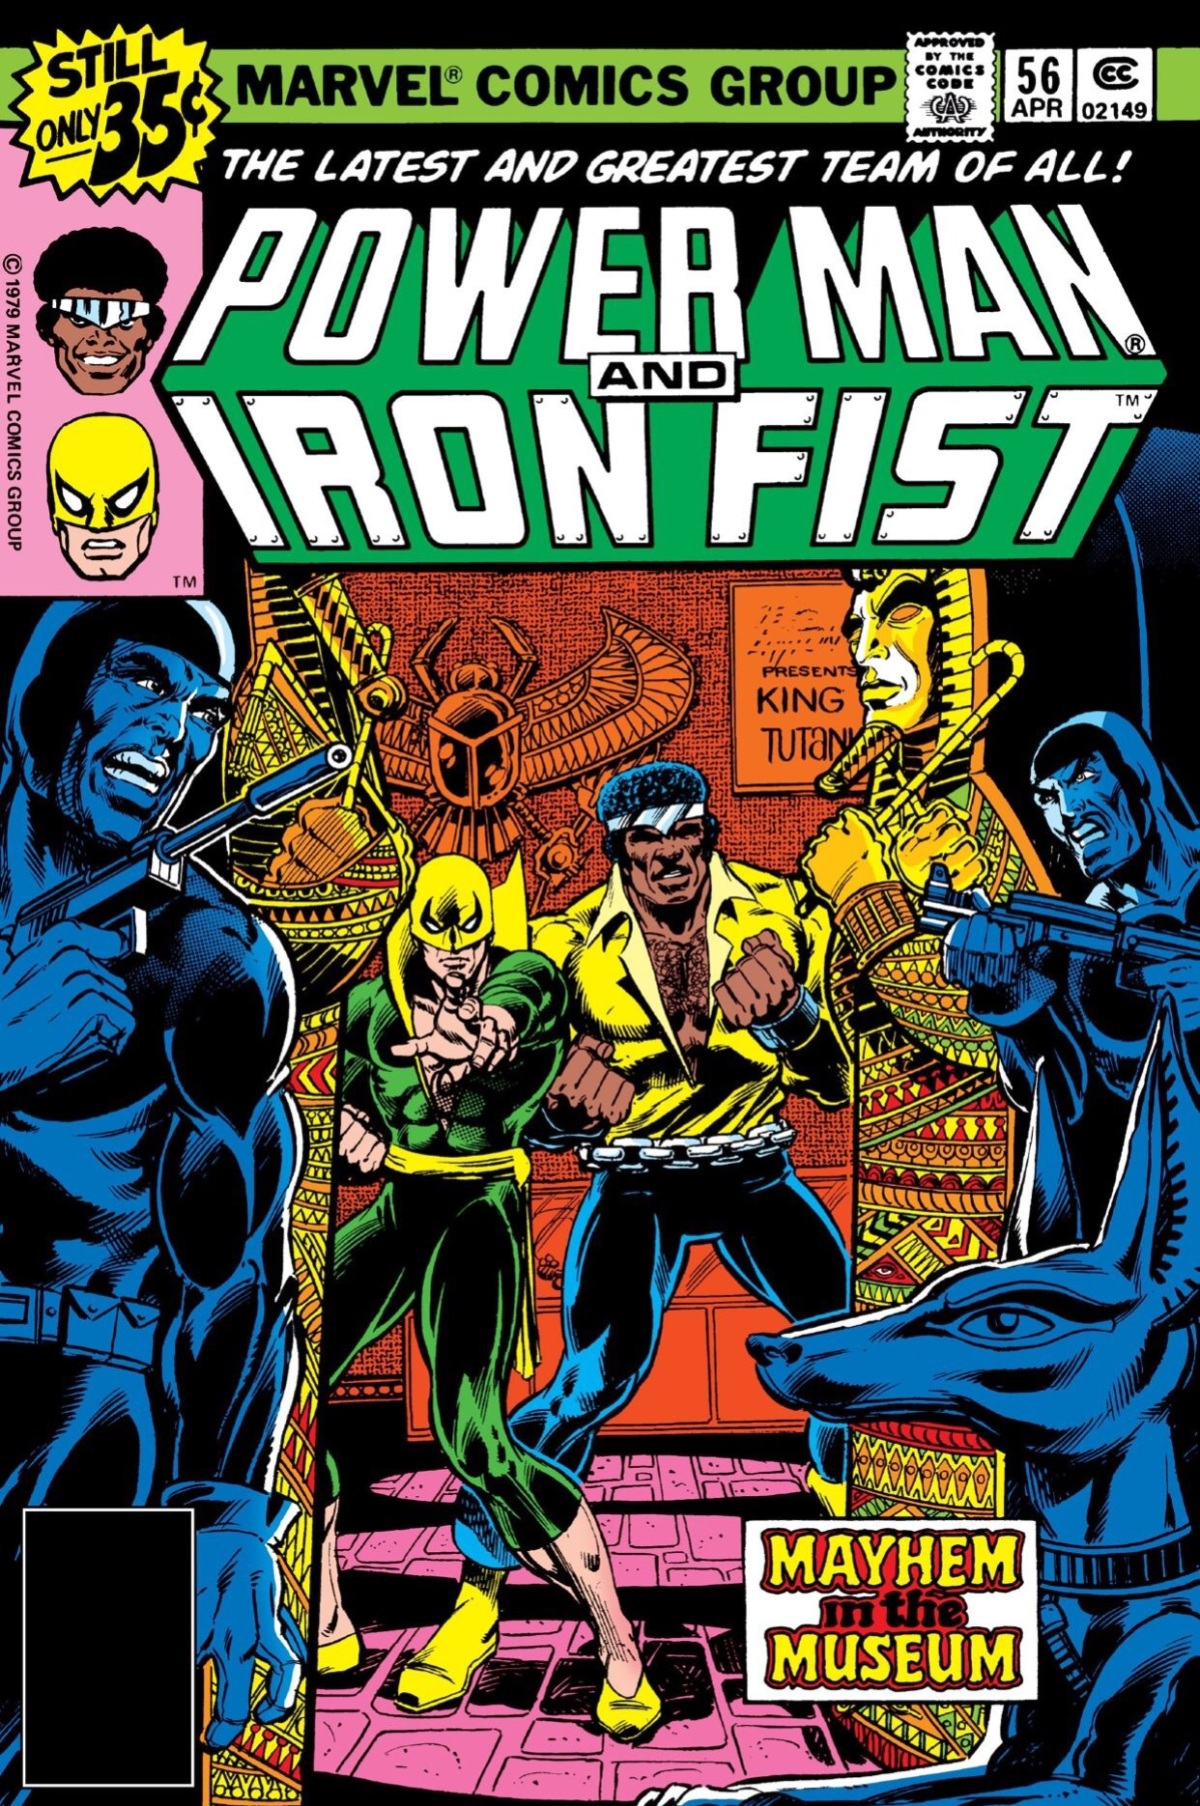 Power Man and Iron Fist #56